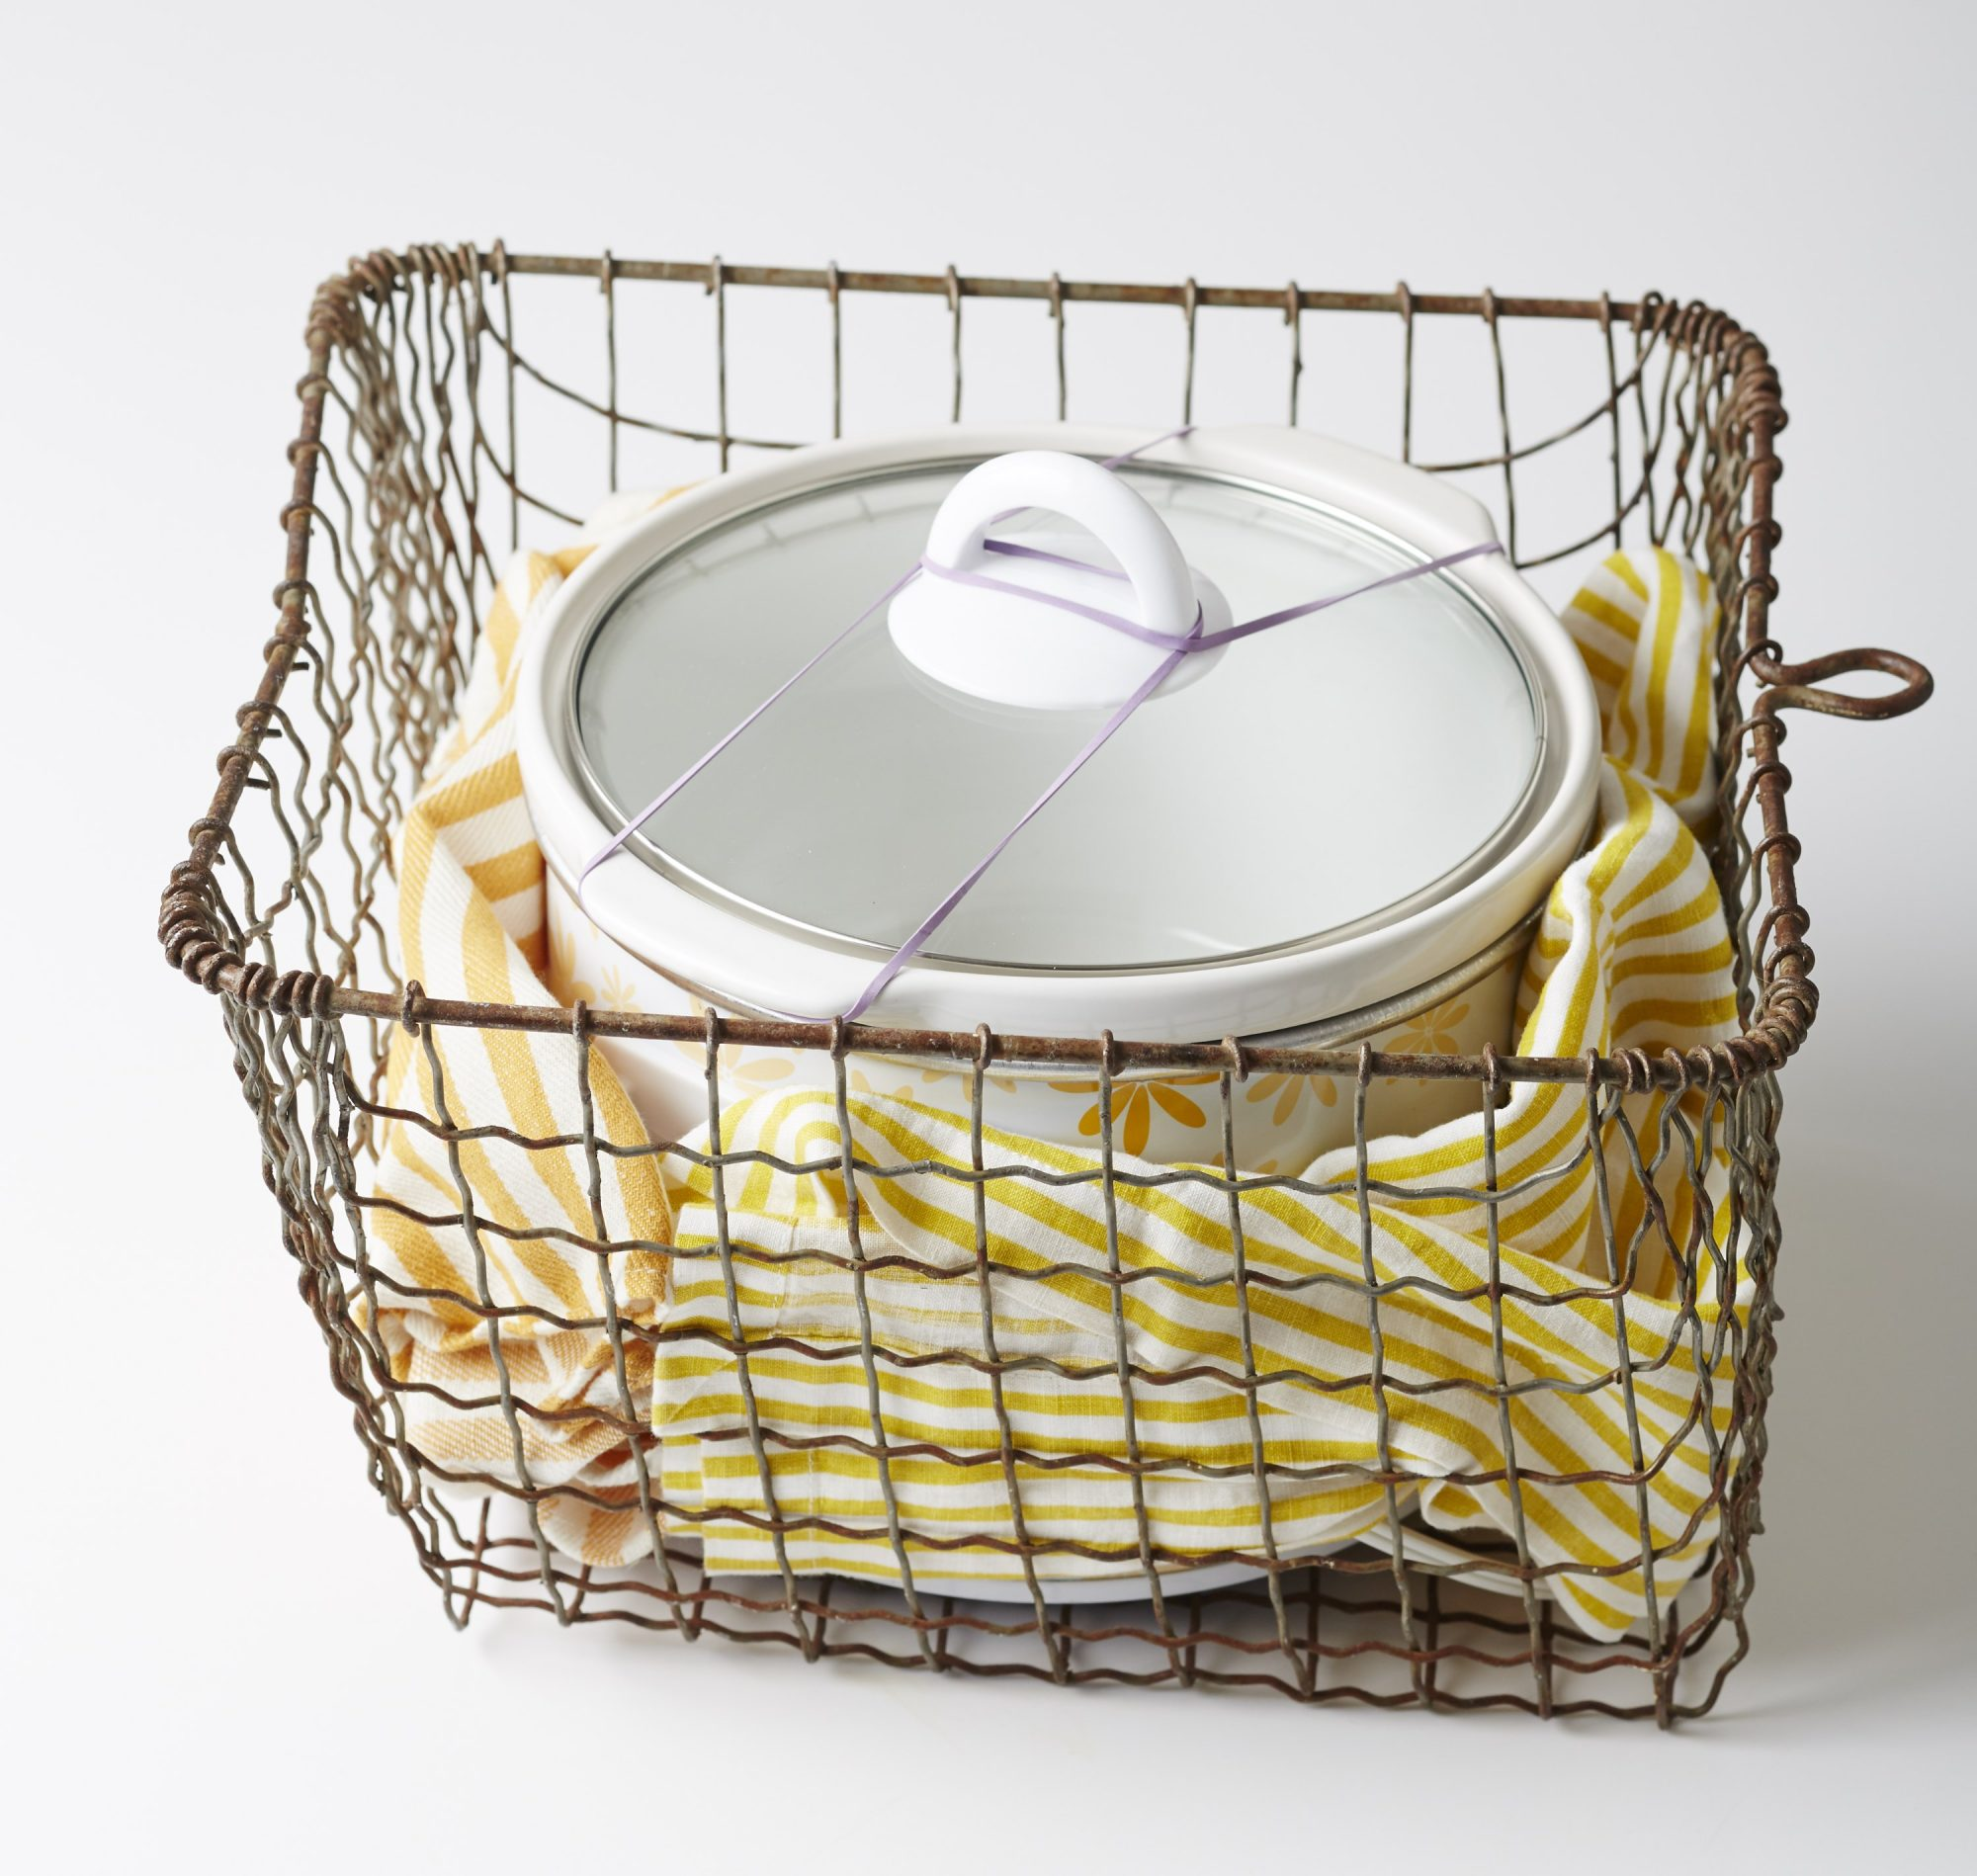 Basket for Carrying Slow Cooker